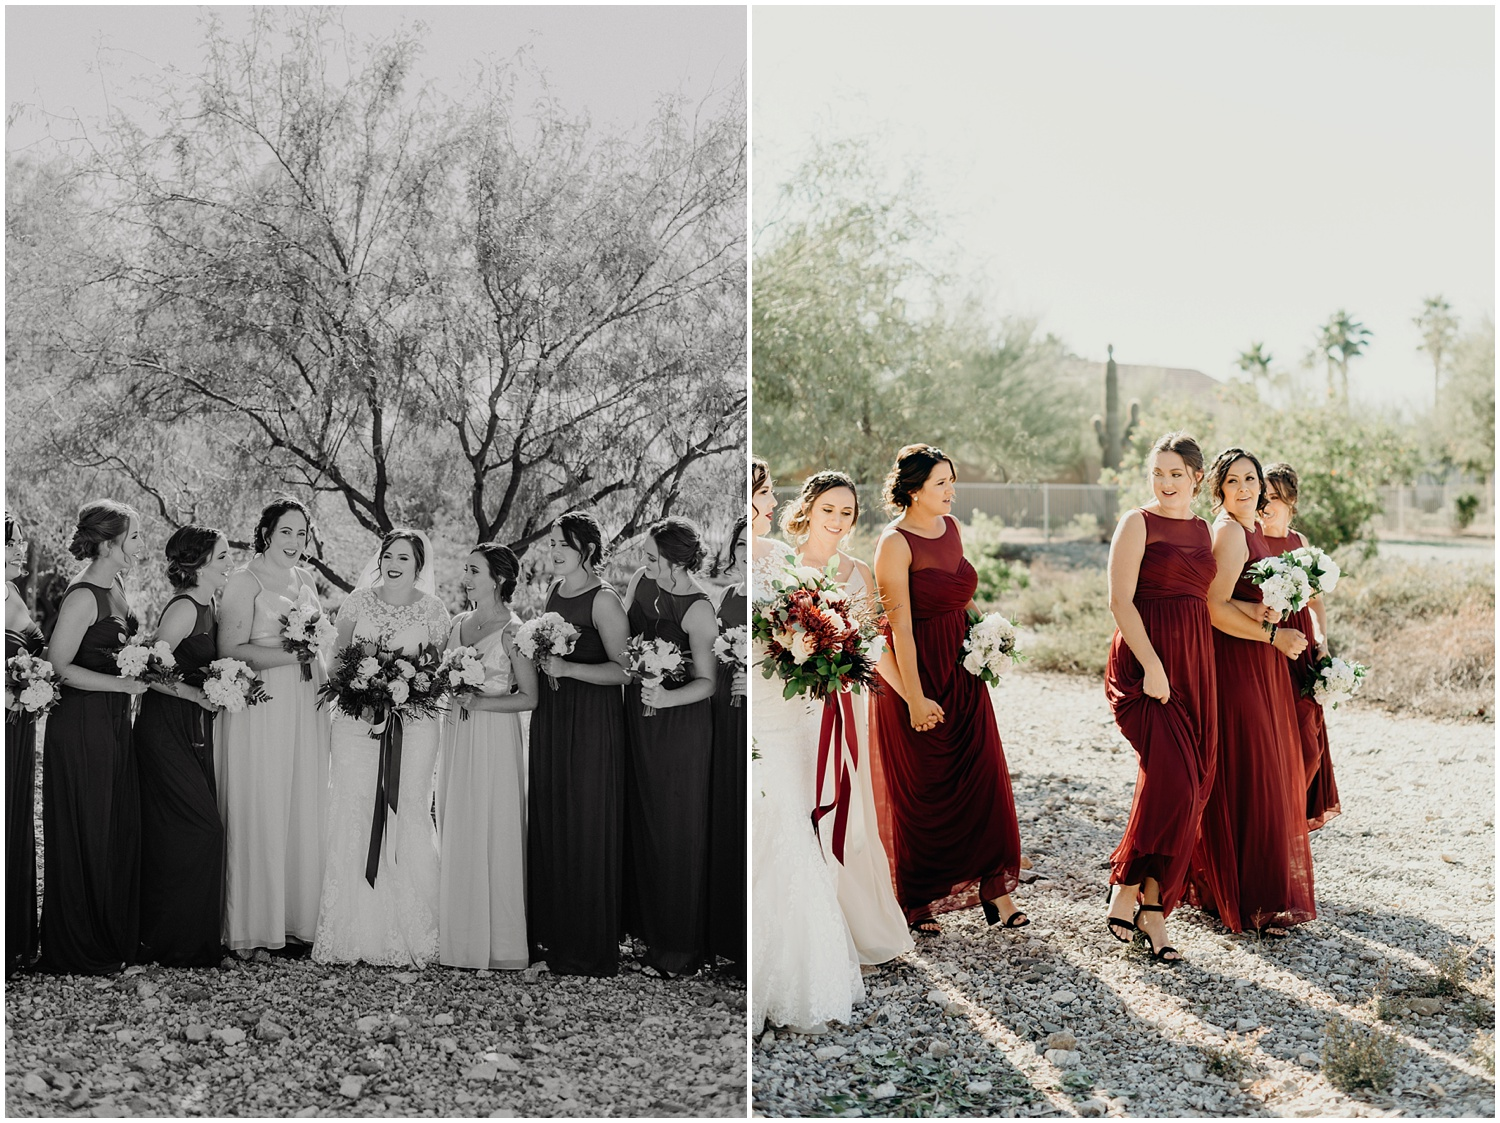 Documenting a couple's wedding day through photojournalism in Casa Grande, Arizona.